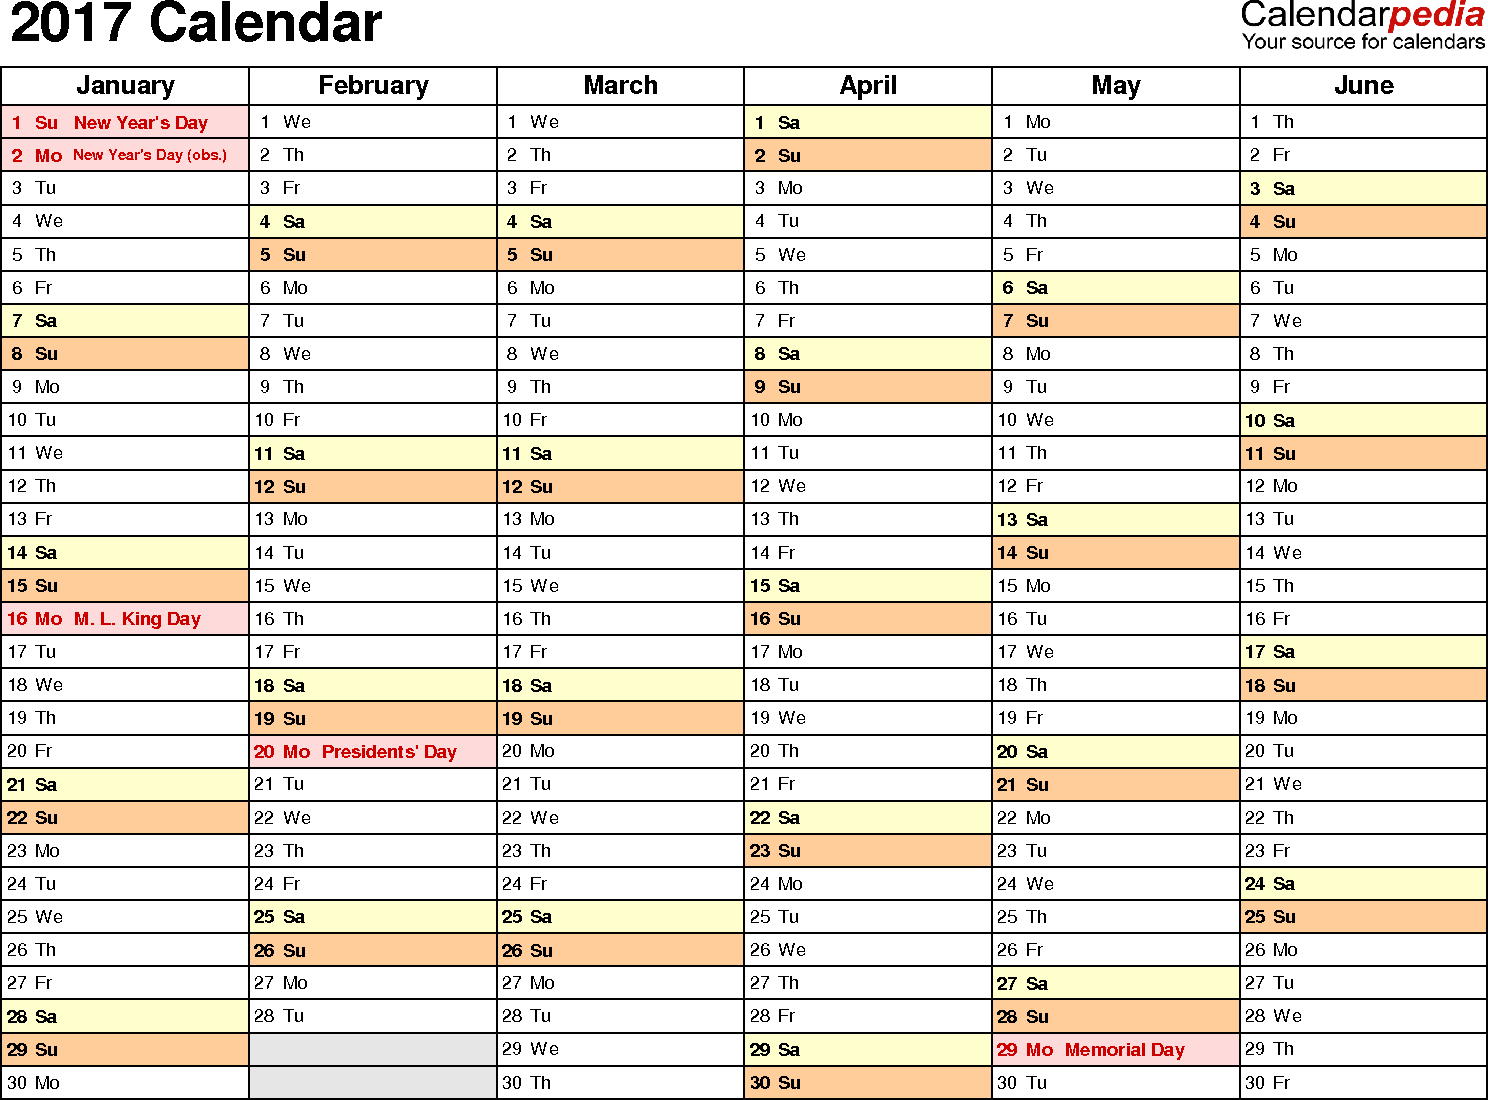 Ediblewildsus  Pleasing  Calendar  Download  Free Printable Excel Templates Xls With Remarkable Template   Calendar For Excel Months Horizontally  Pages Landscape Orientation With Agreeable Popular Excel Formulas Also Excel Sum Rows In Addition Draw Histogram In Excel And Display Formula In Excel As Well As Excel Calendar Download Additionally Spss To Excel From Calendarpediacom With Ediblewildsus  Remarkable  Calendar  Download  Free Printable Excel Templates Xls With Agreeable Template   Calendar For Excel Months Horizontally  Pages Landscape Orientation And Pleasing Popular Excel Formulas Also Excel Sum Rows In Addition Draw Histogram In Excel From Calendarpediacom